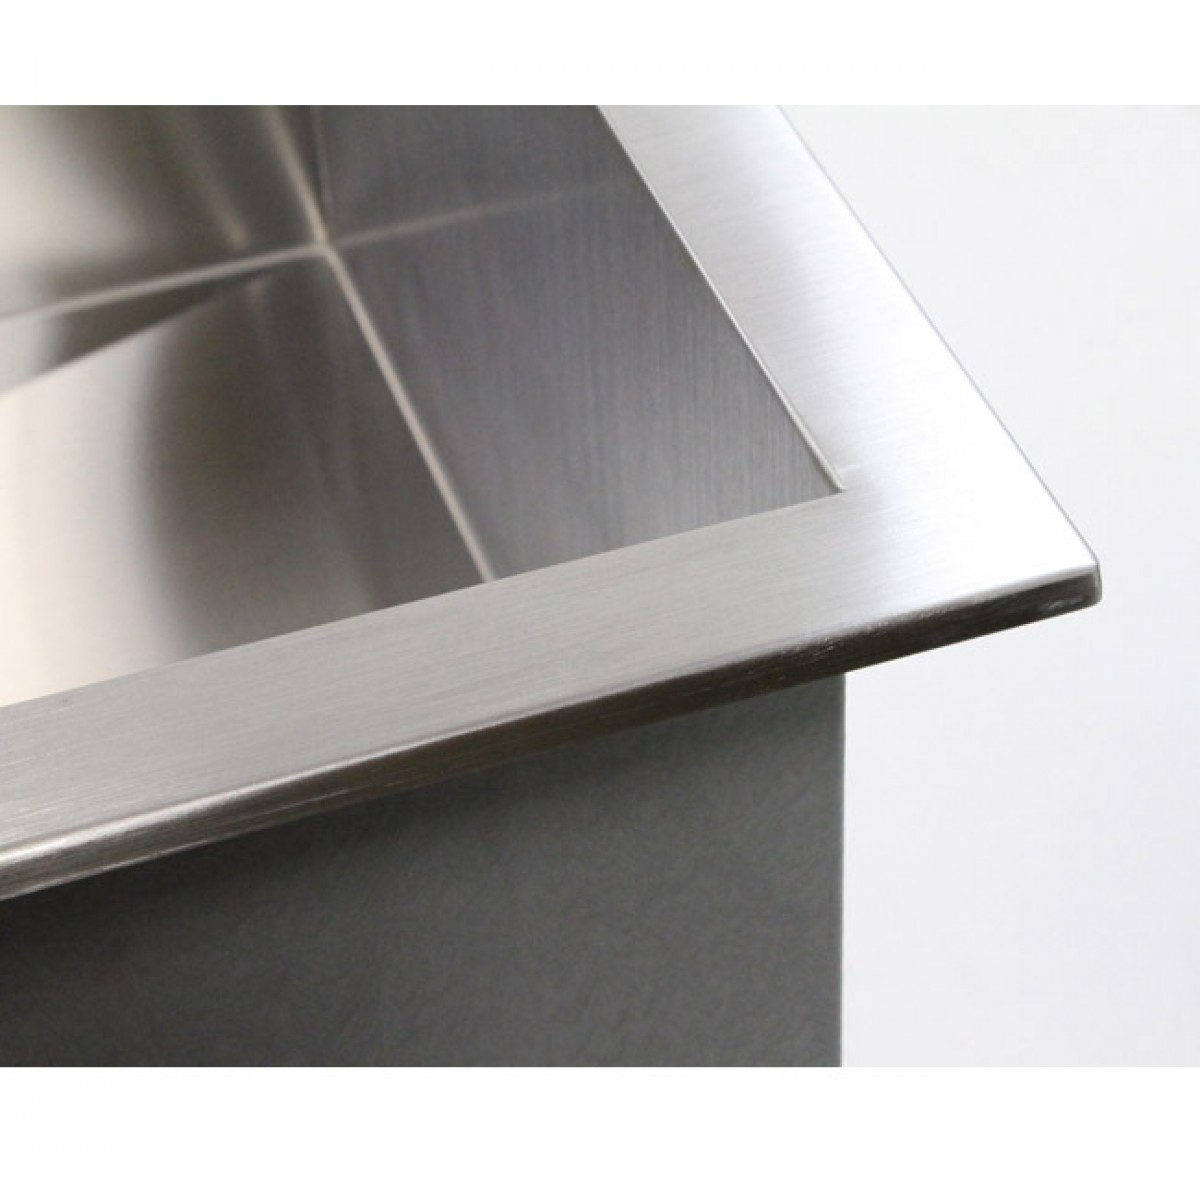 Top Mount Kitchen Sinks : 19 Inch Top-Mount / Drop-In Stainless Steel Single Bowl Kitchen Island ...